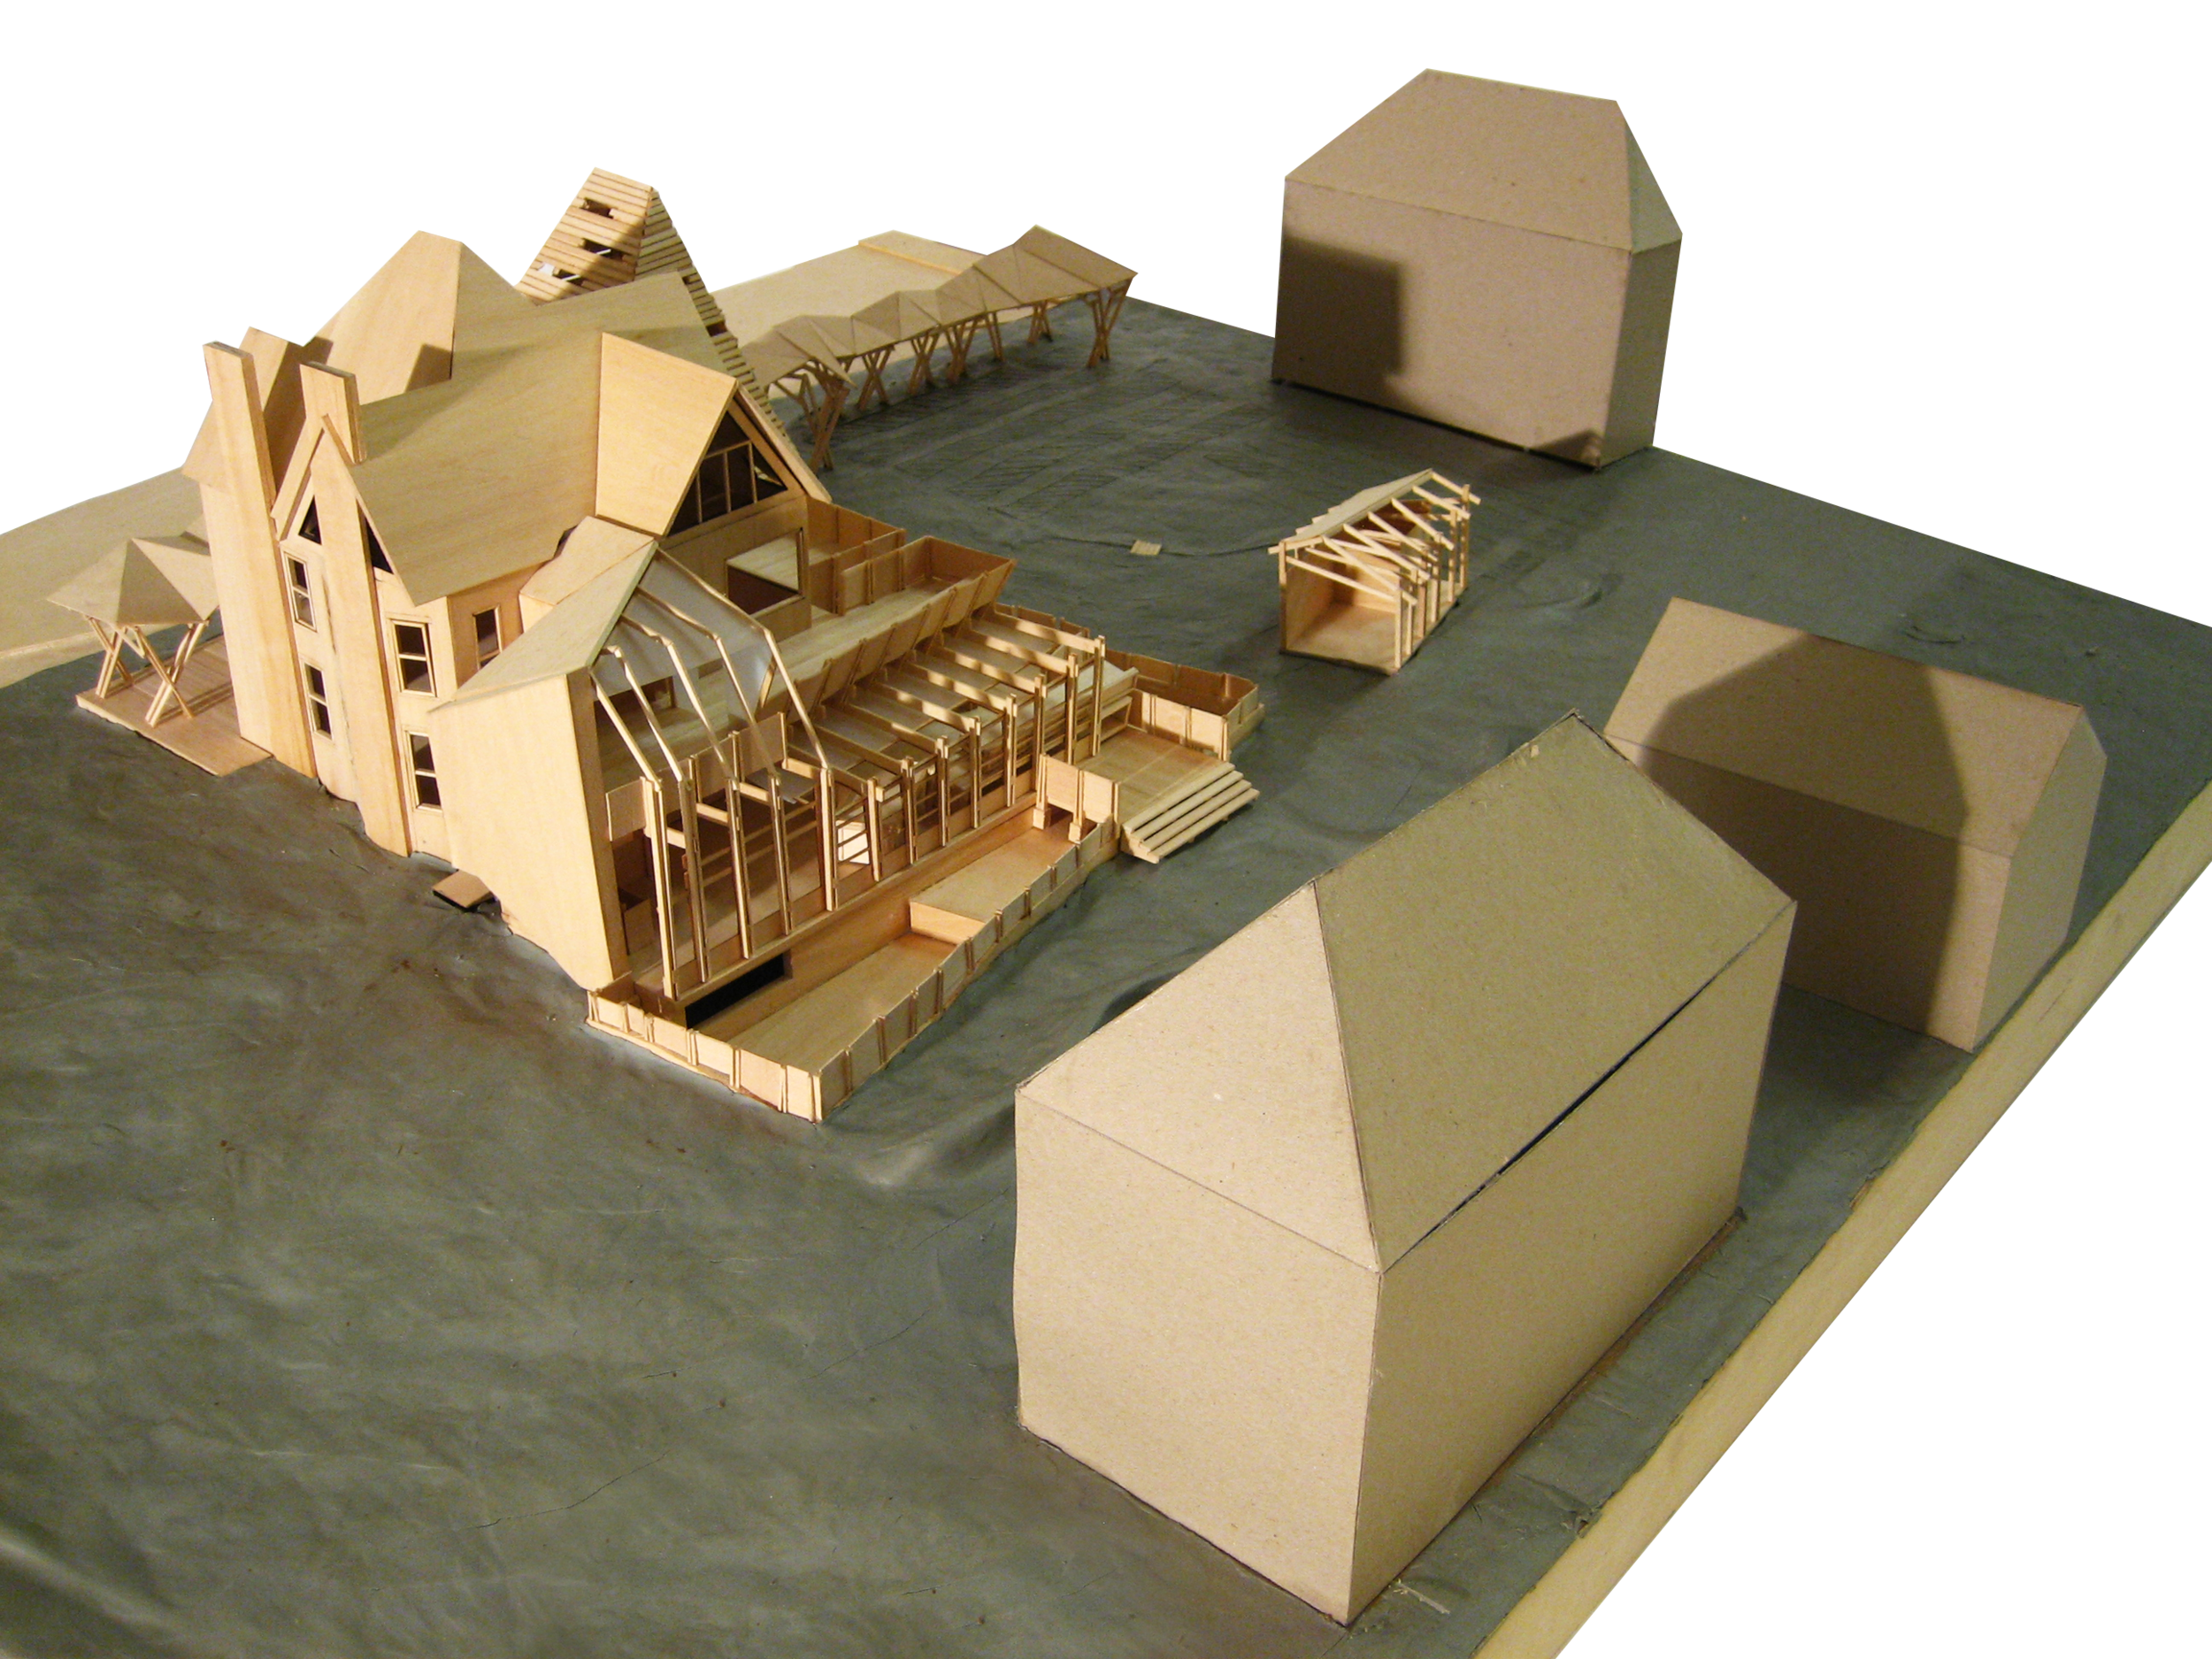 Scale model of greenhouses and community porch.